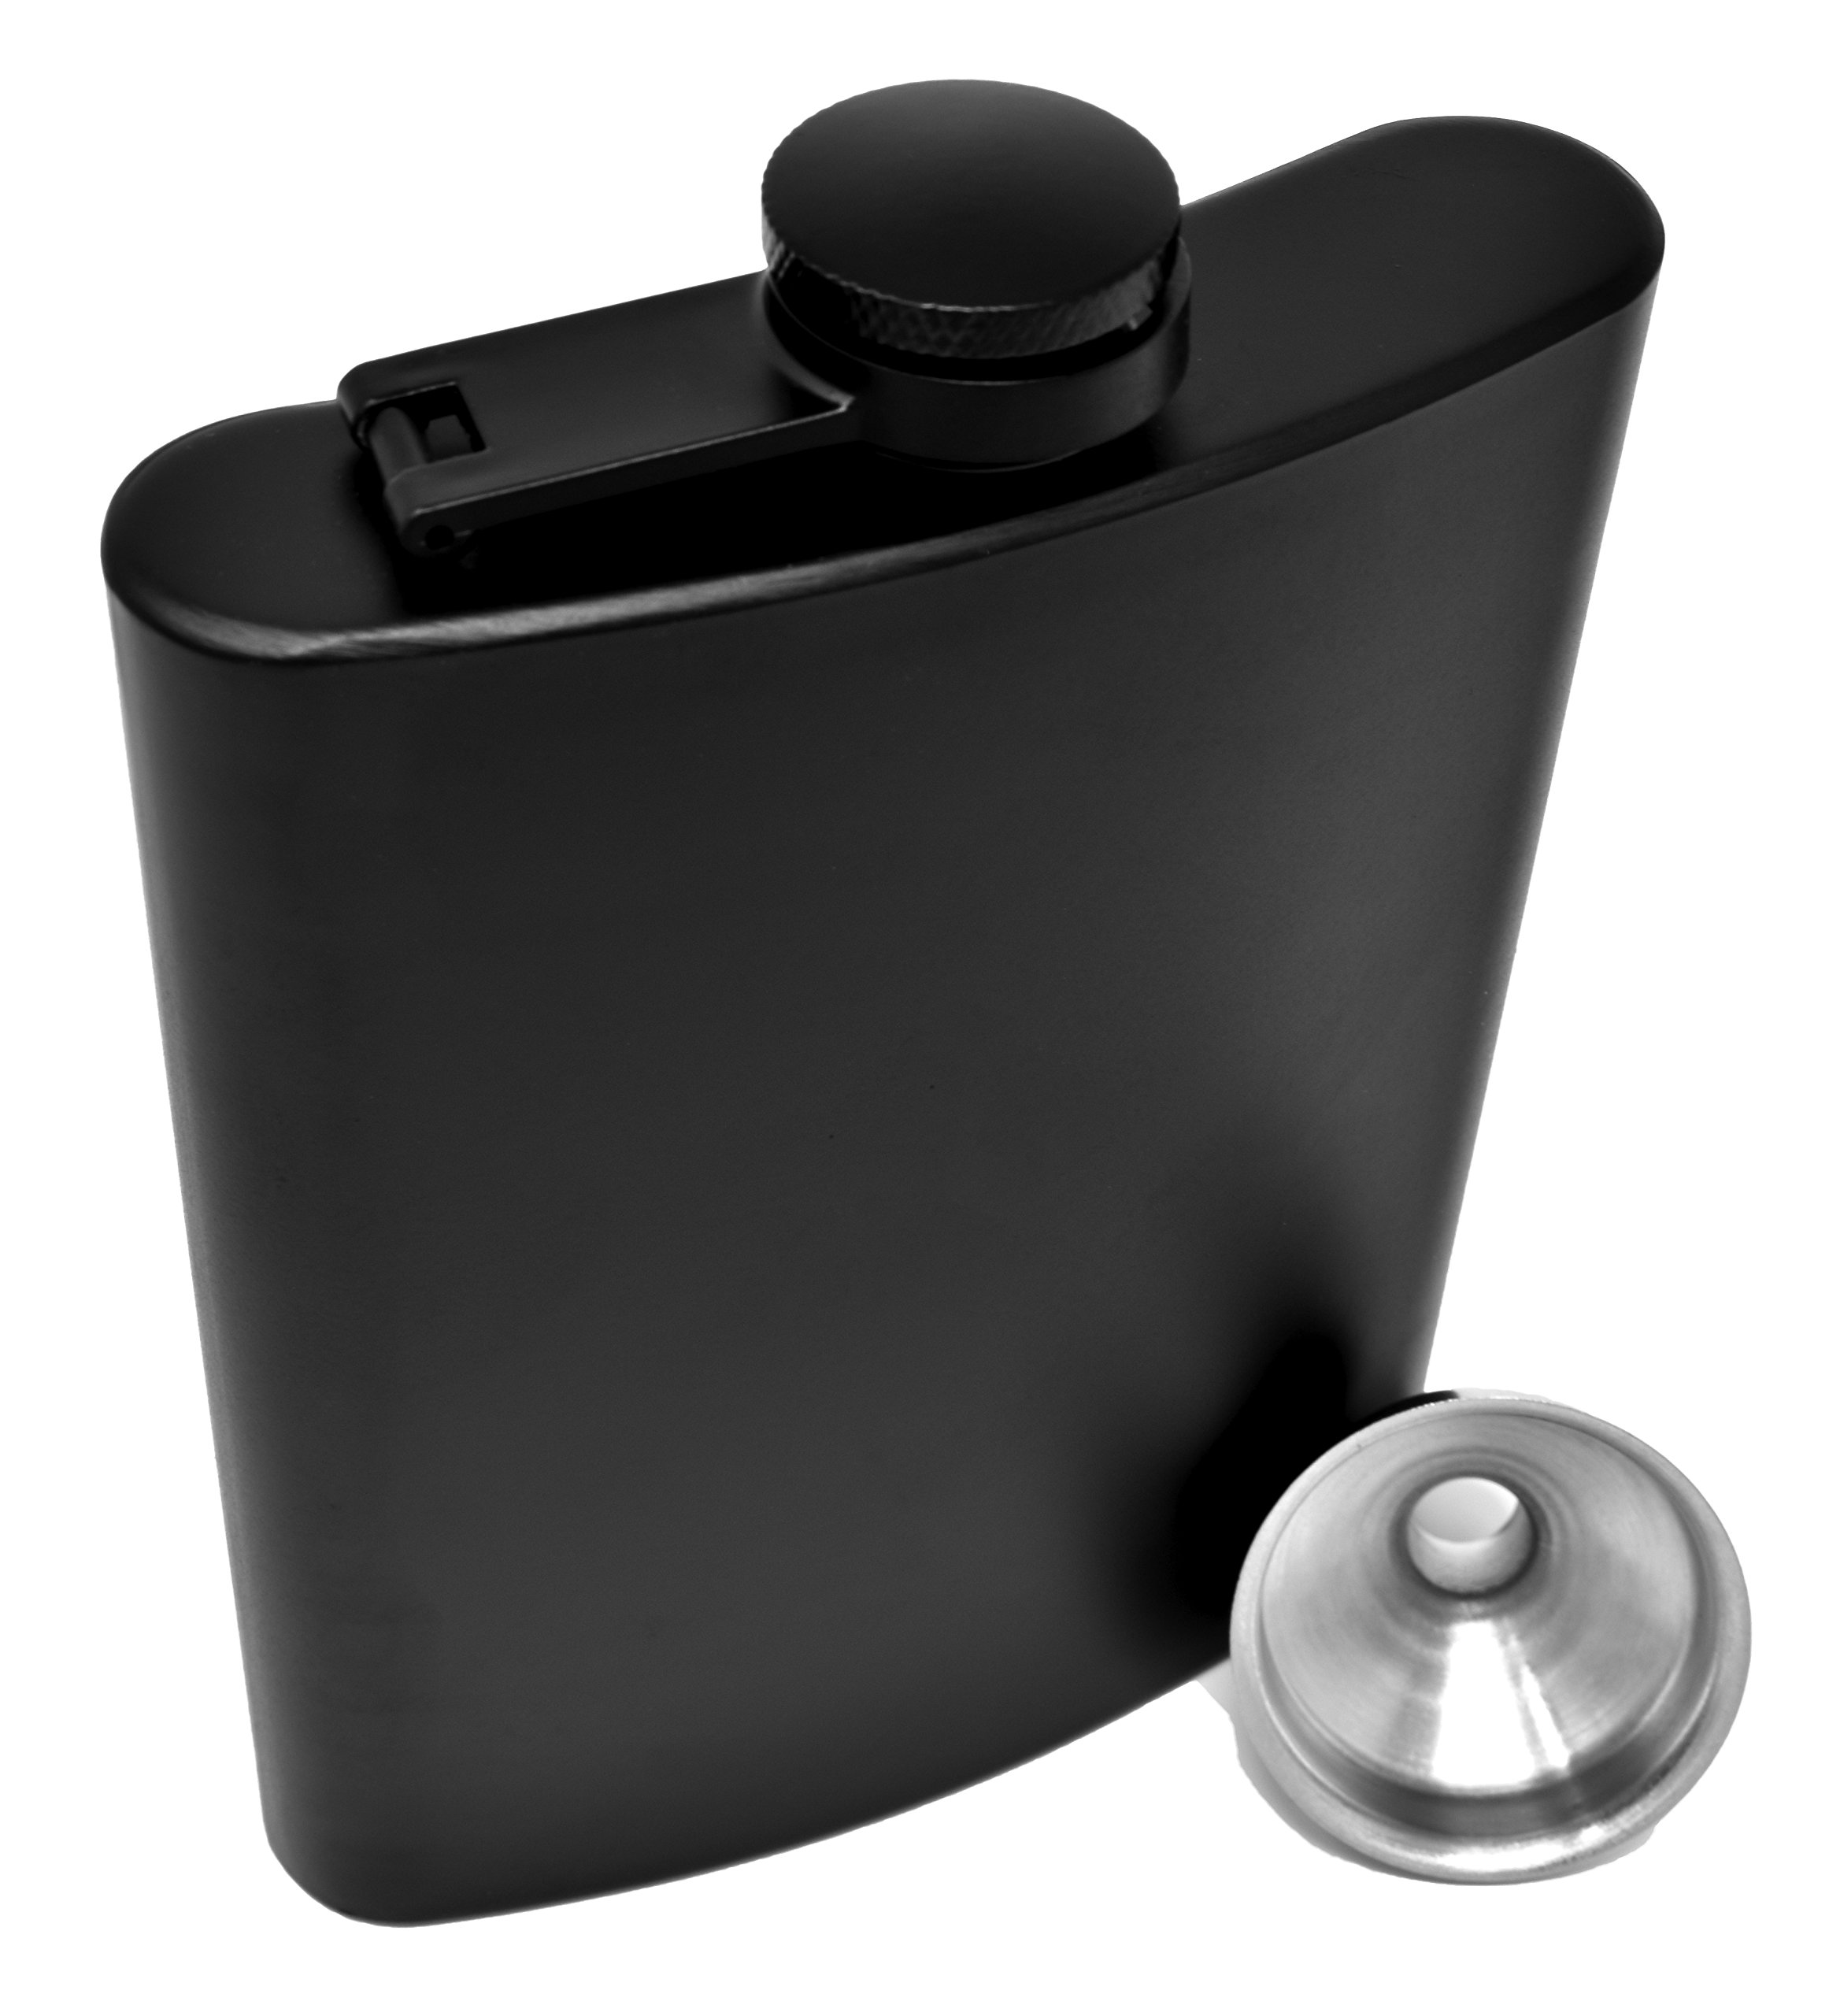 Hip Flask for Liquor Matte Black 8 Oz Stainless Steel Leakproof with Funnel in Gift Package for Men & Women for Perfecting Your Drinking Experience! By IDALIO